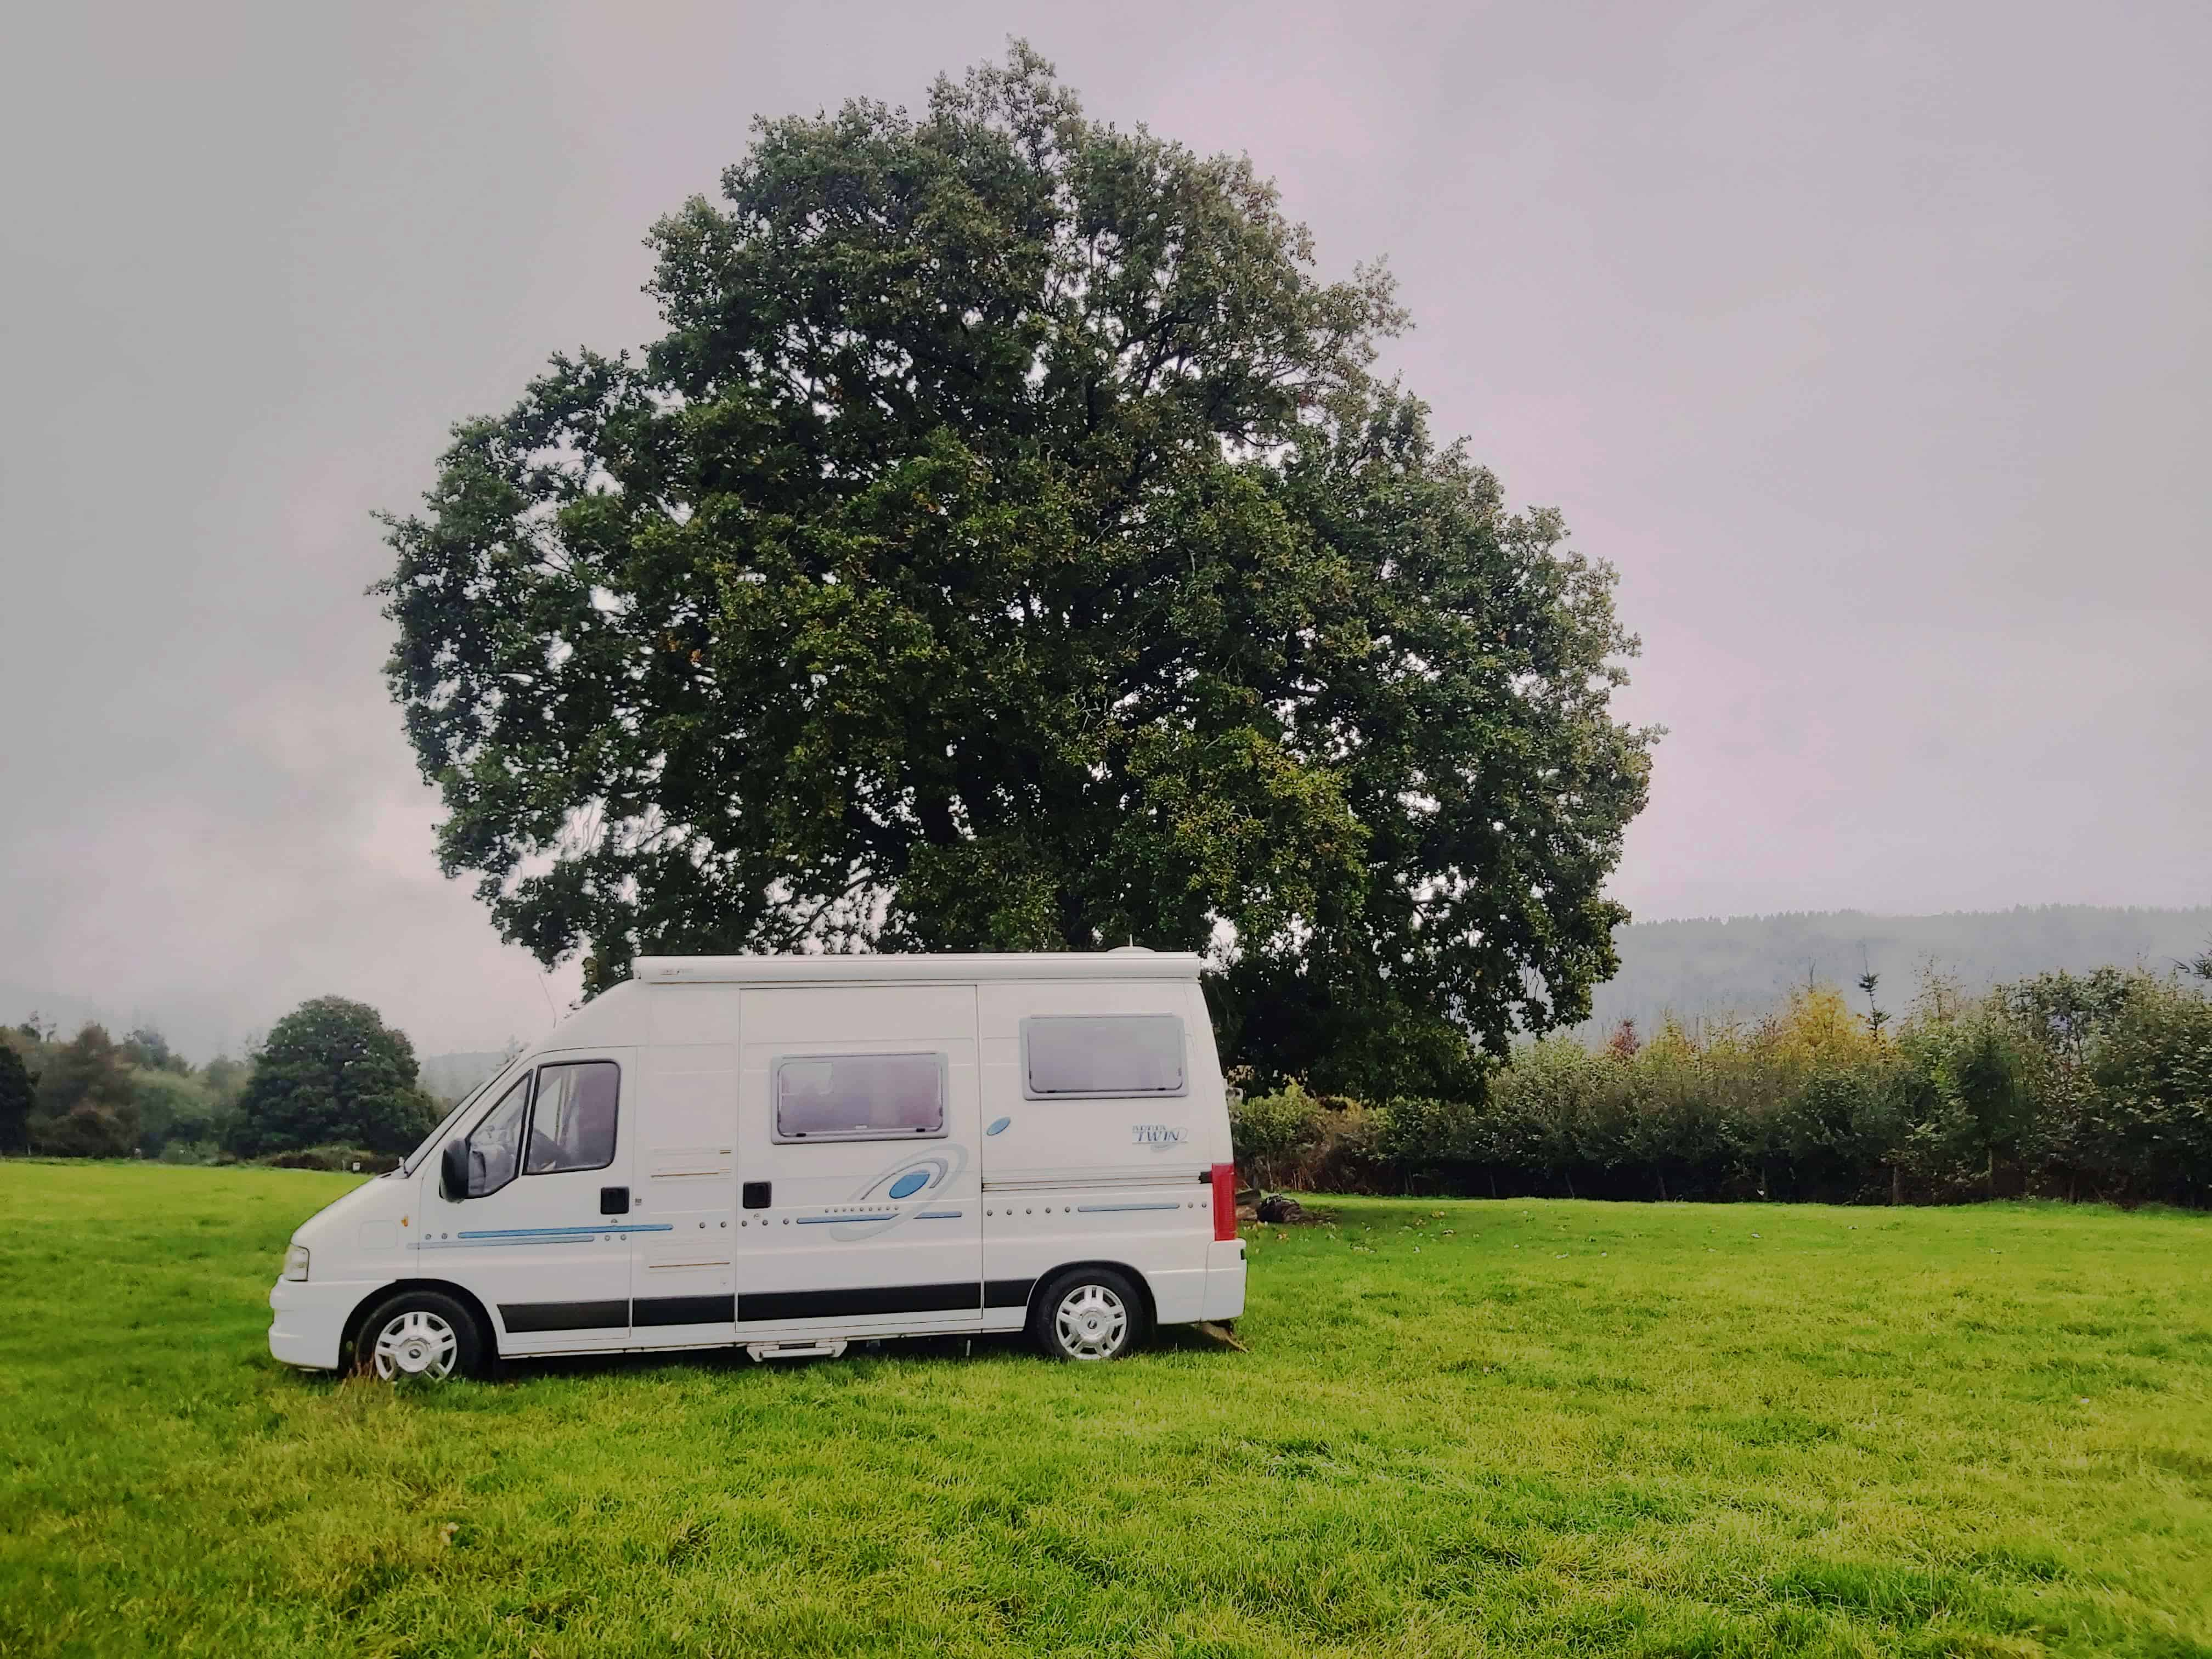 monstay farm campsite